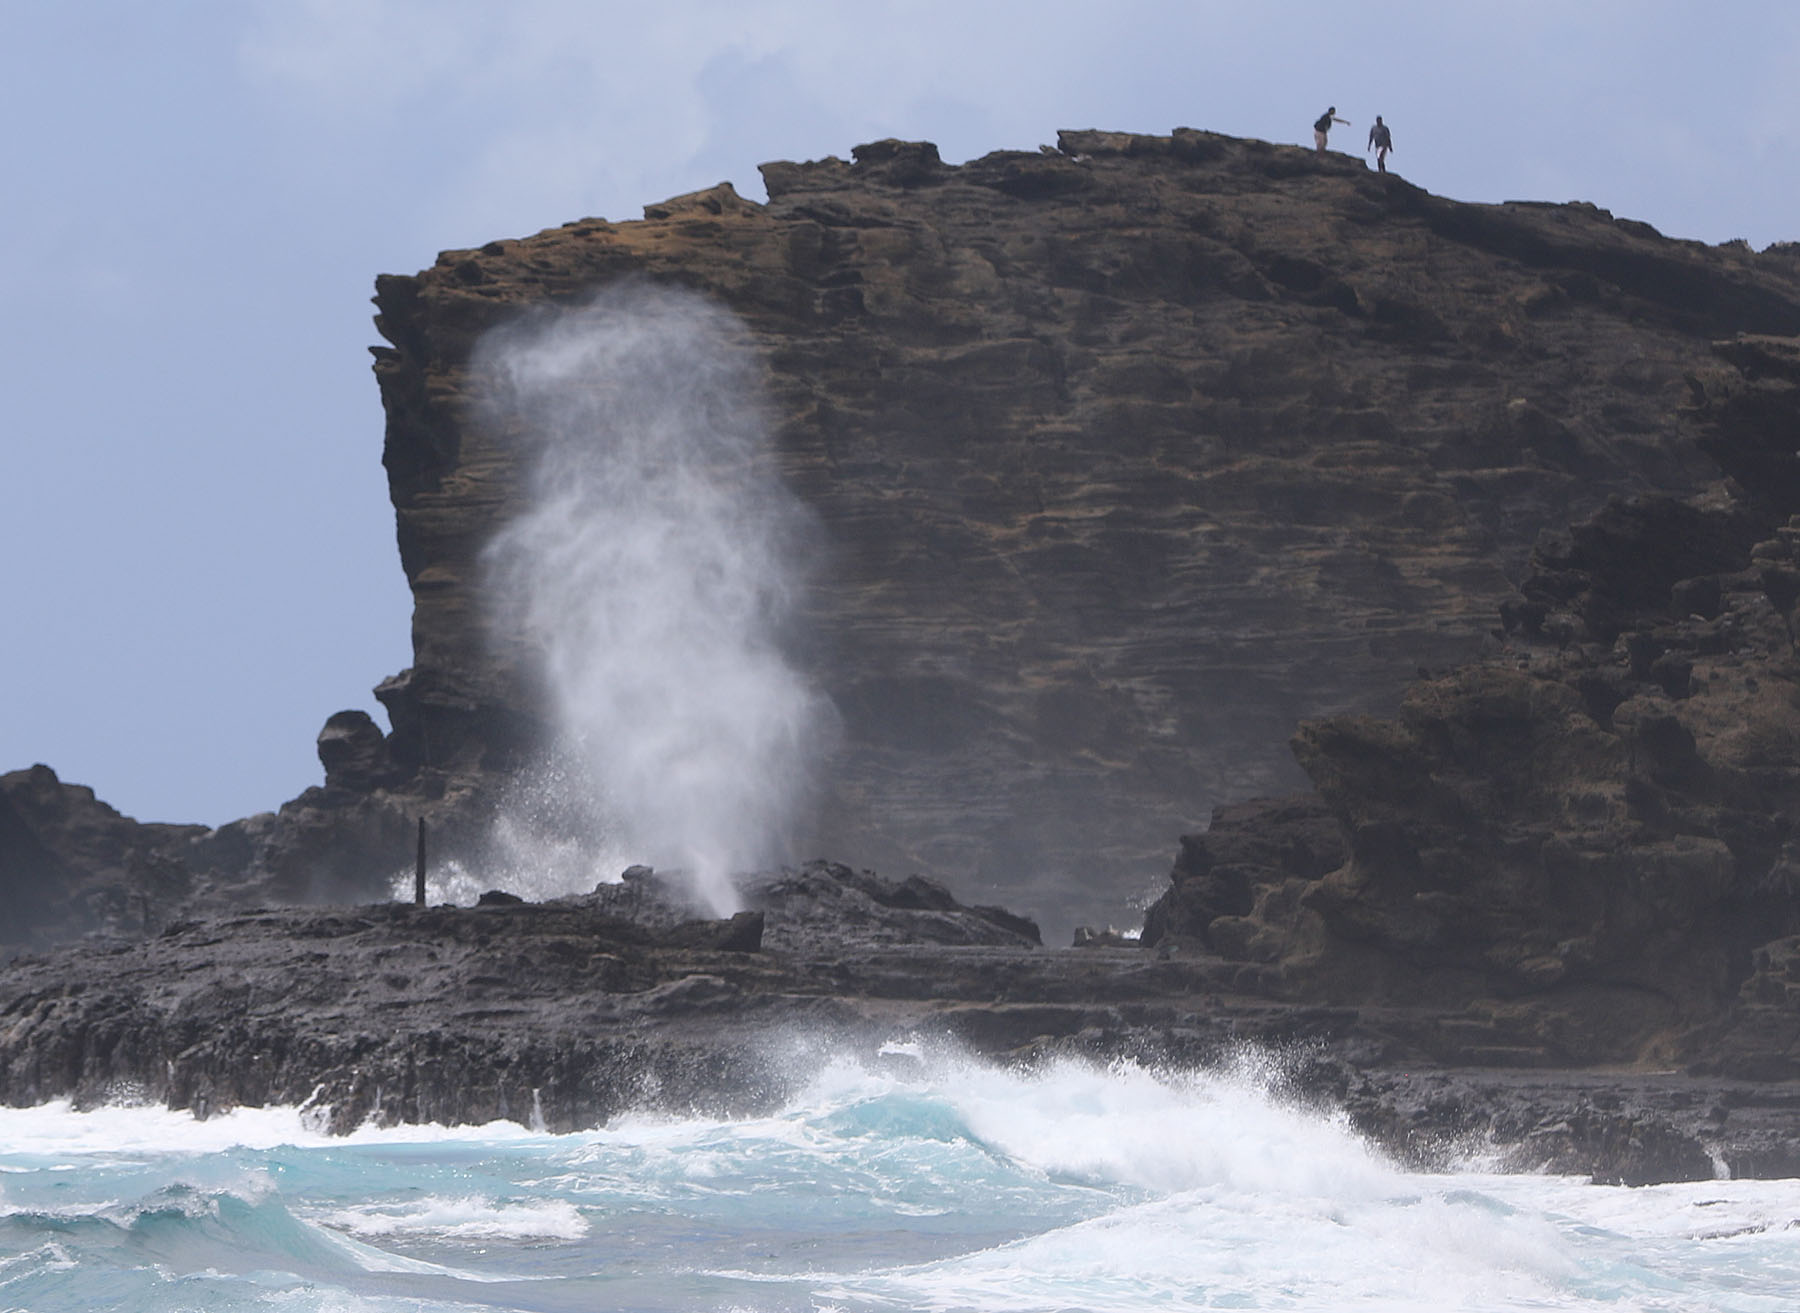 <p>Ignoring signs warning people to stay behind a fence, visitors climb the cliffs at Oahu&#8217;sHalona Blowhole.</p>